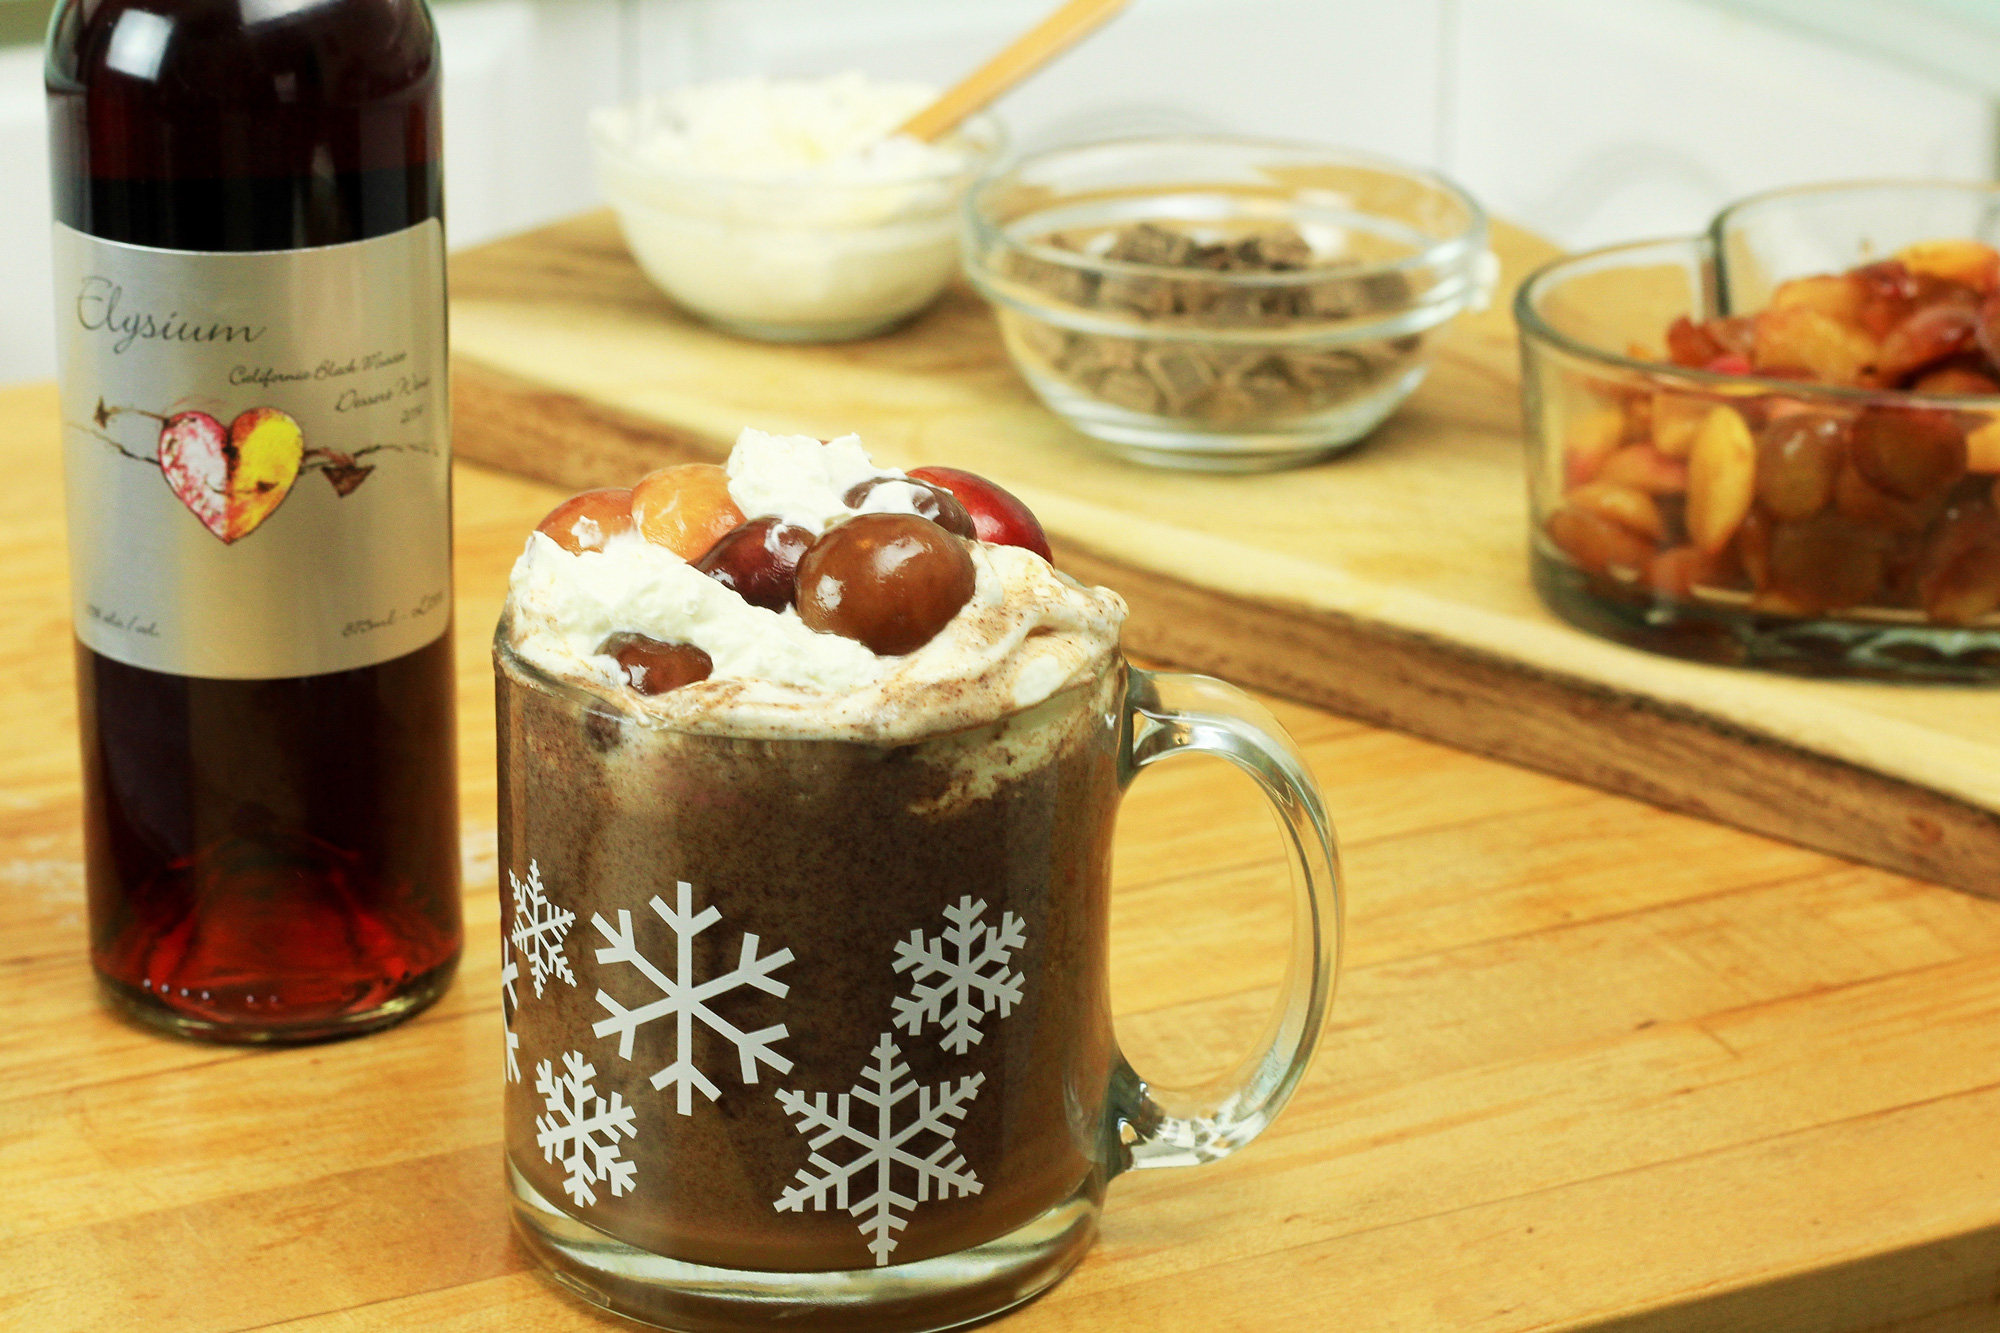 Coffee mug filled with Elysium Hot Chocolate and cherries, next to a bottle of Elysium Black Muscat Dessert Wine and various ingredients.